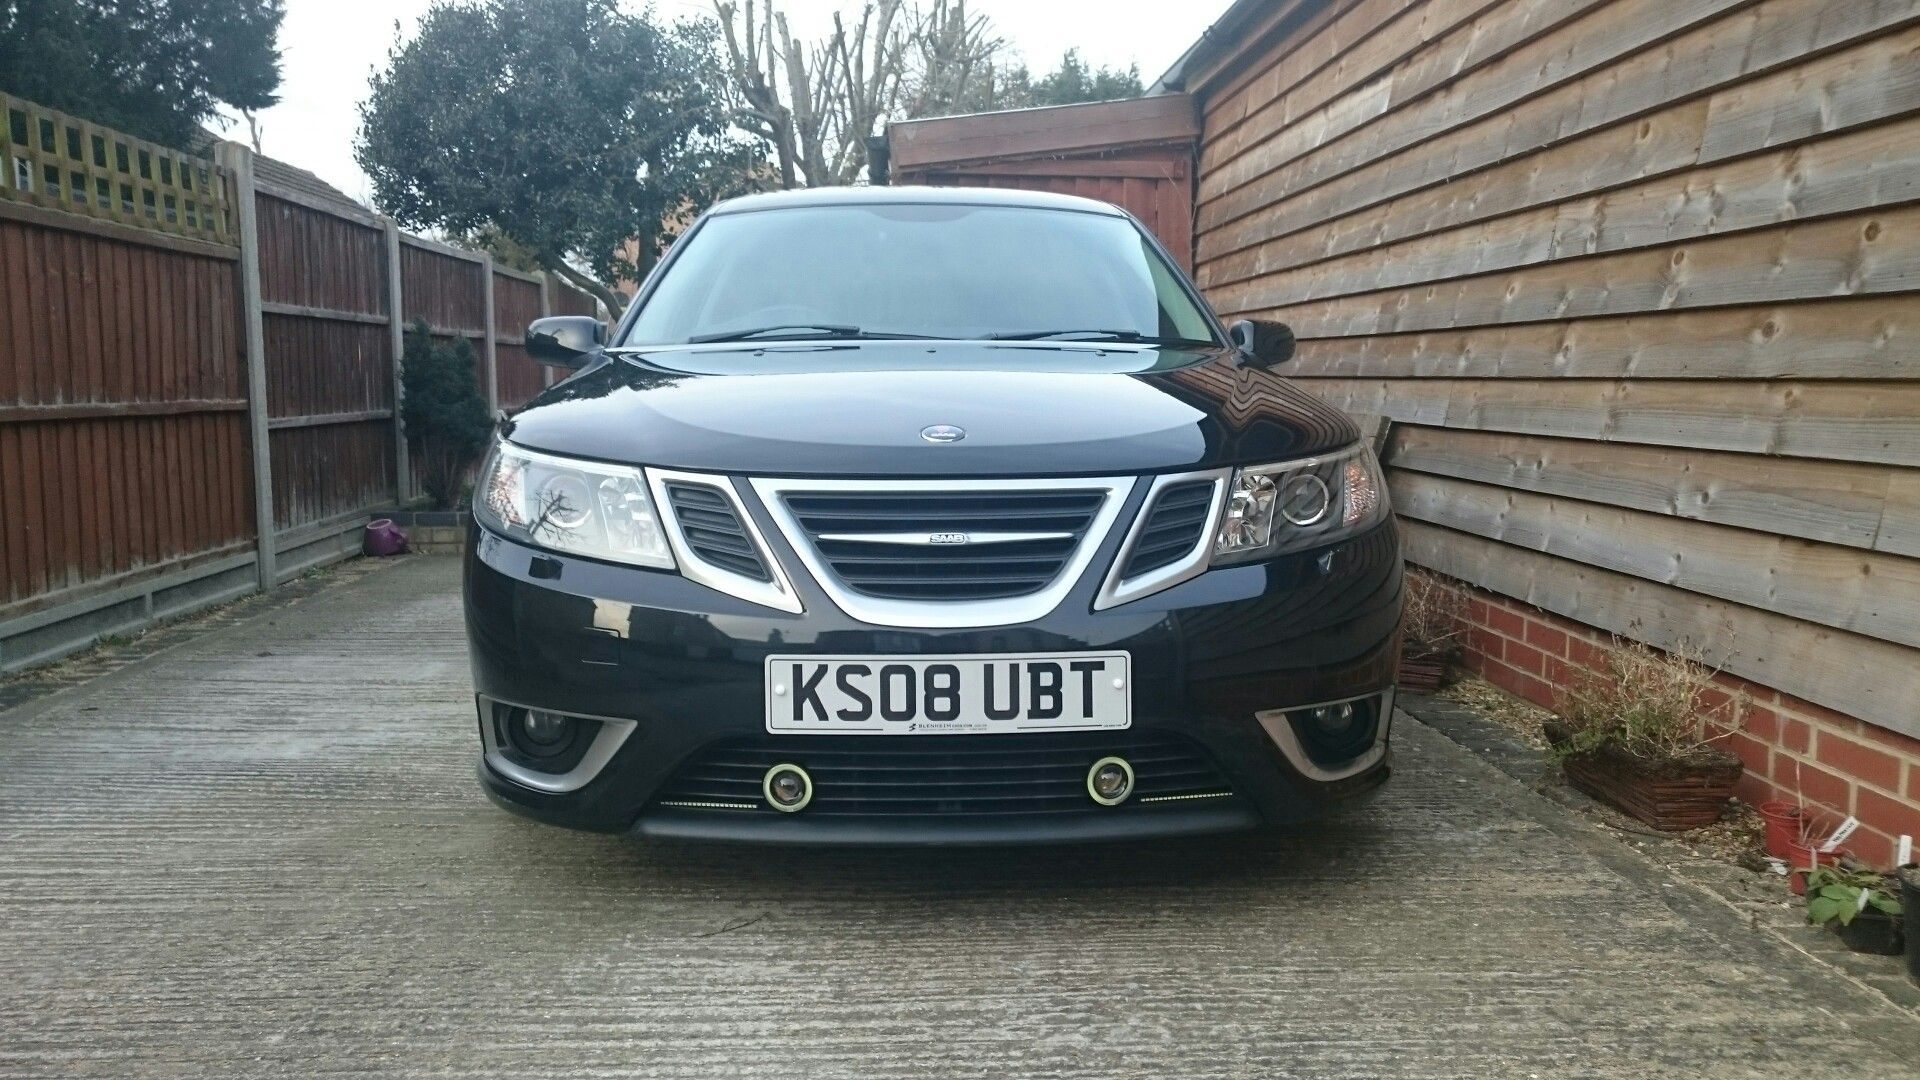 Saab 9 3 Aero Ttid Hirsch Tuned With Additional Led Lights Fitted The Replacement For The 9 5 Saab 9 3 Aero Saab Saab 9 3